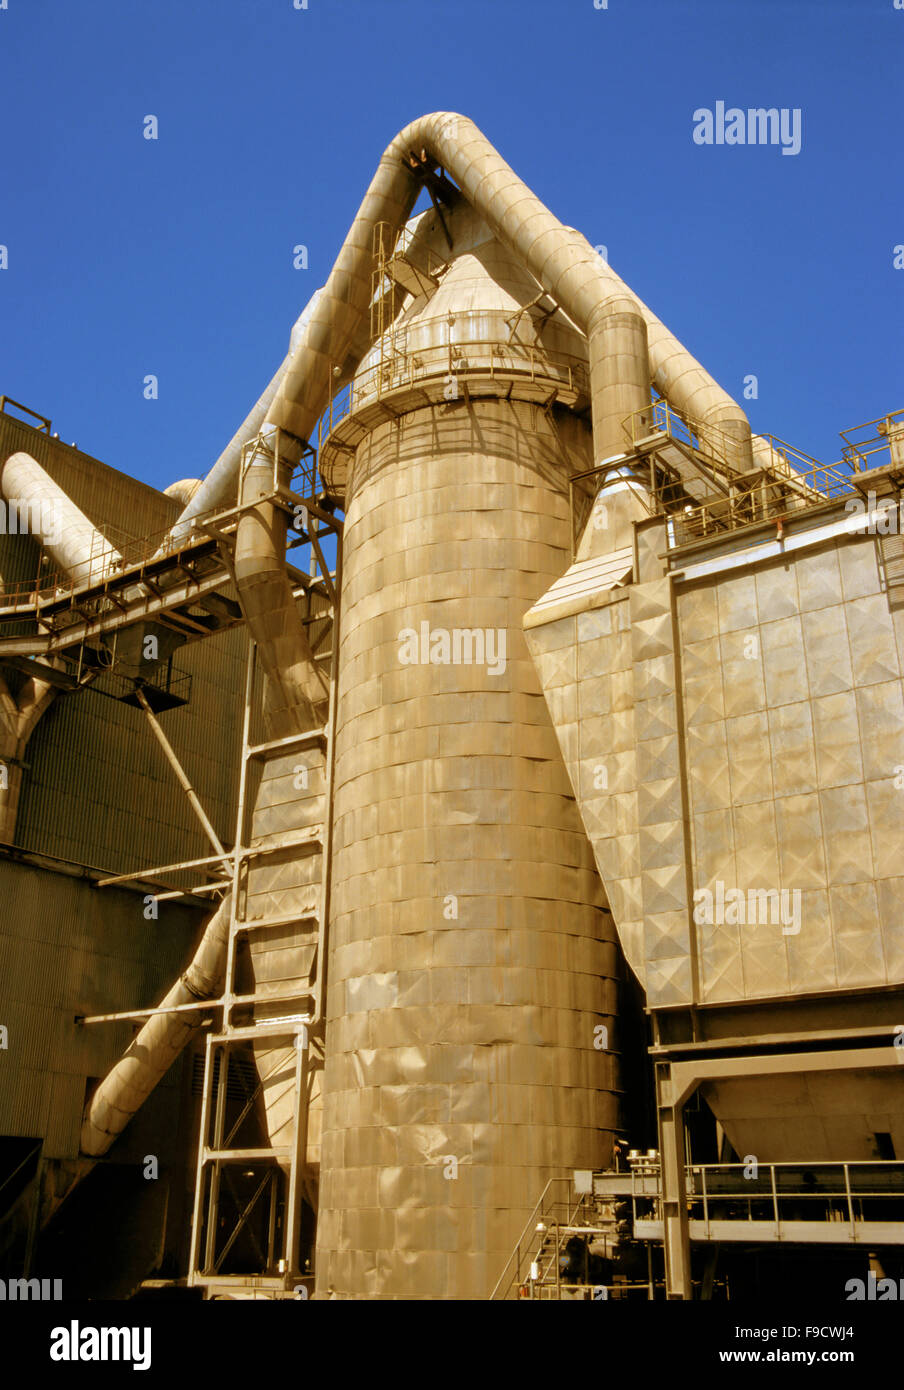 Cement Factory Closely - Stock Image